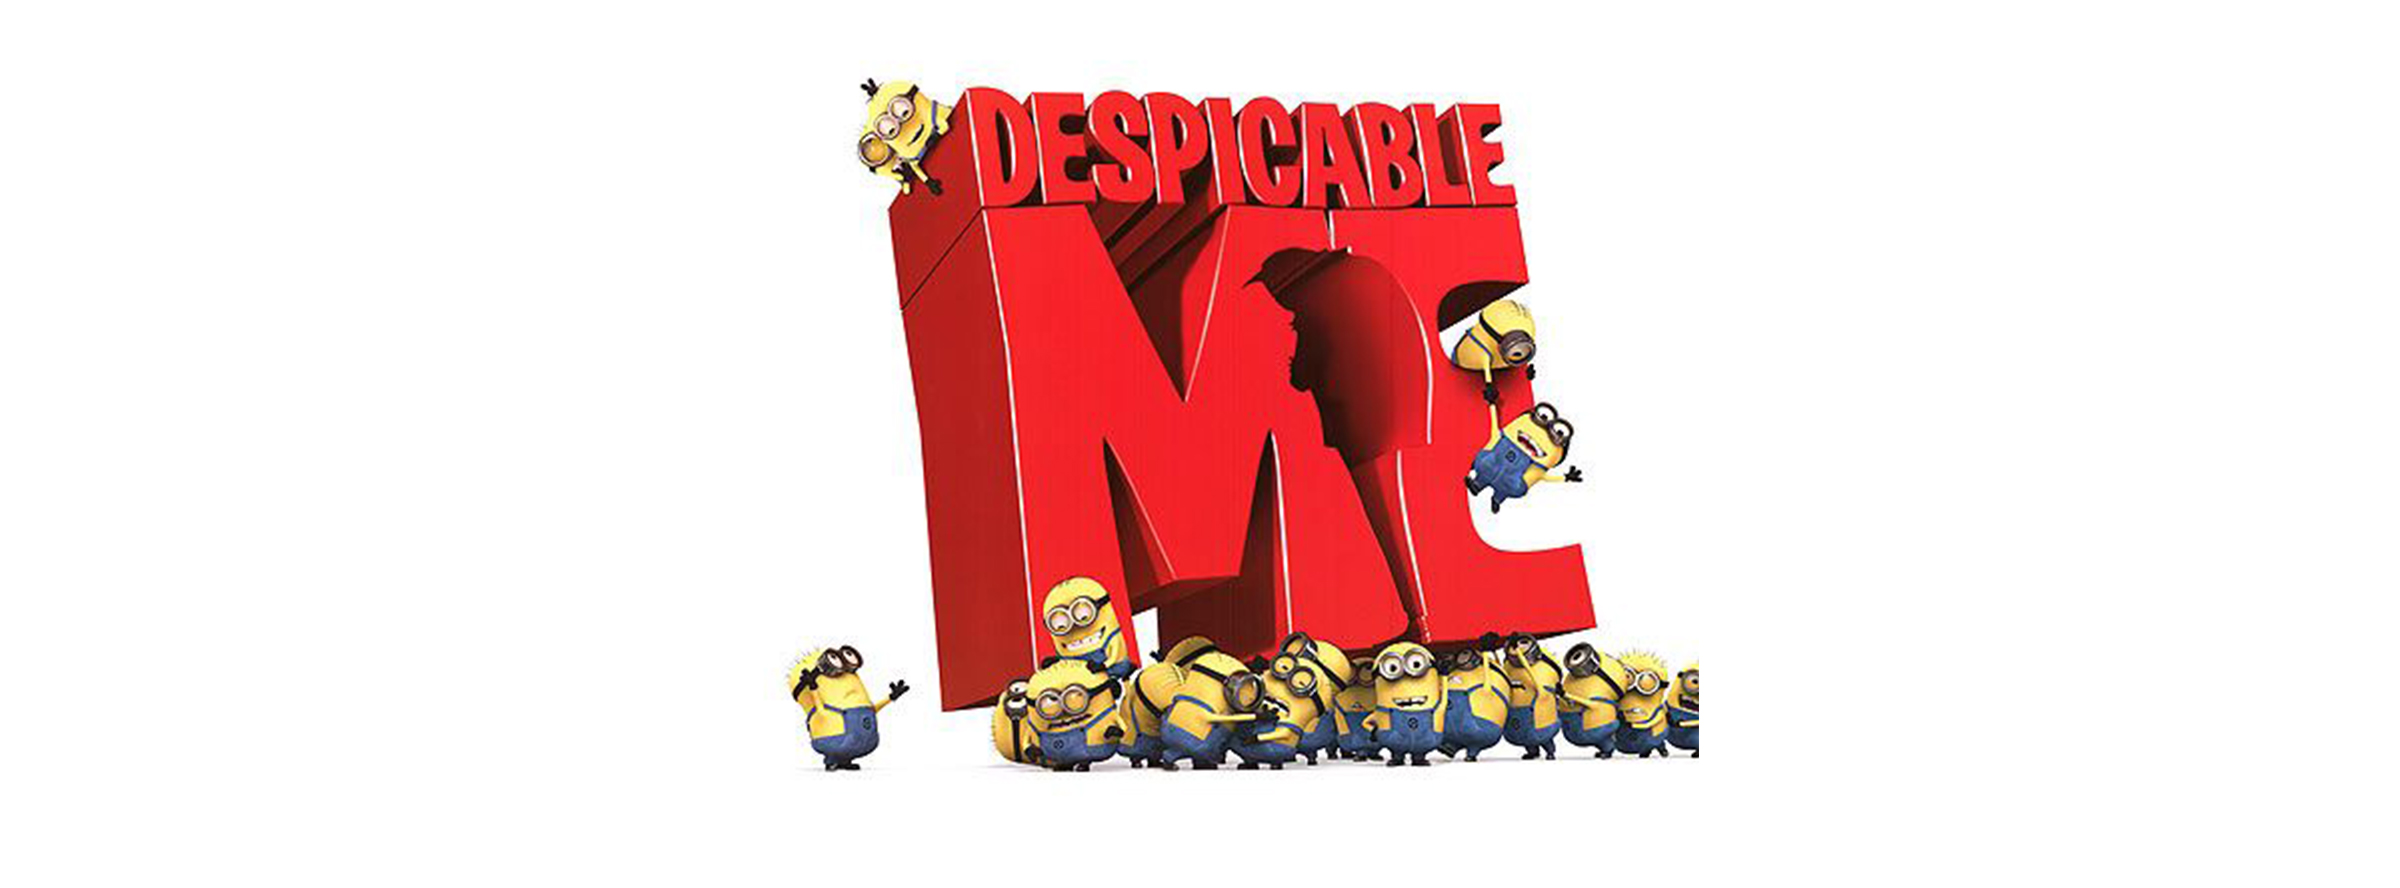 Slider Image for Despicable Me